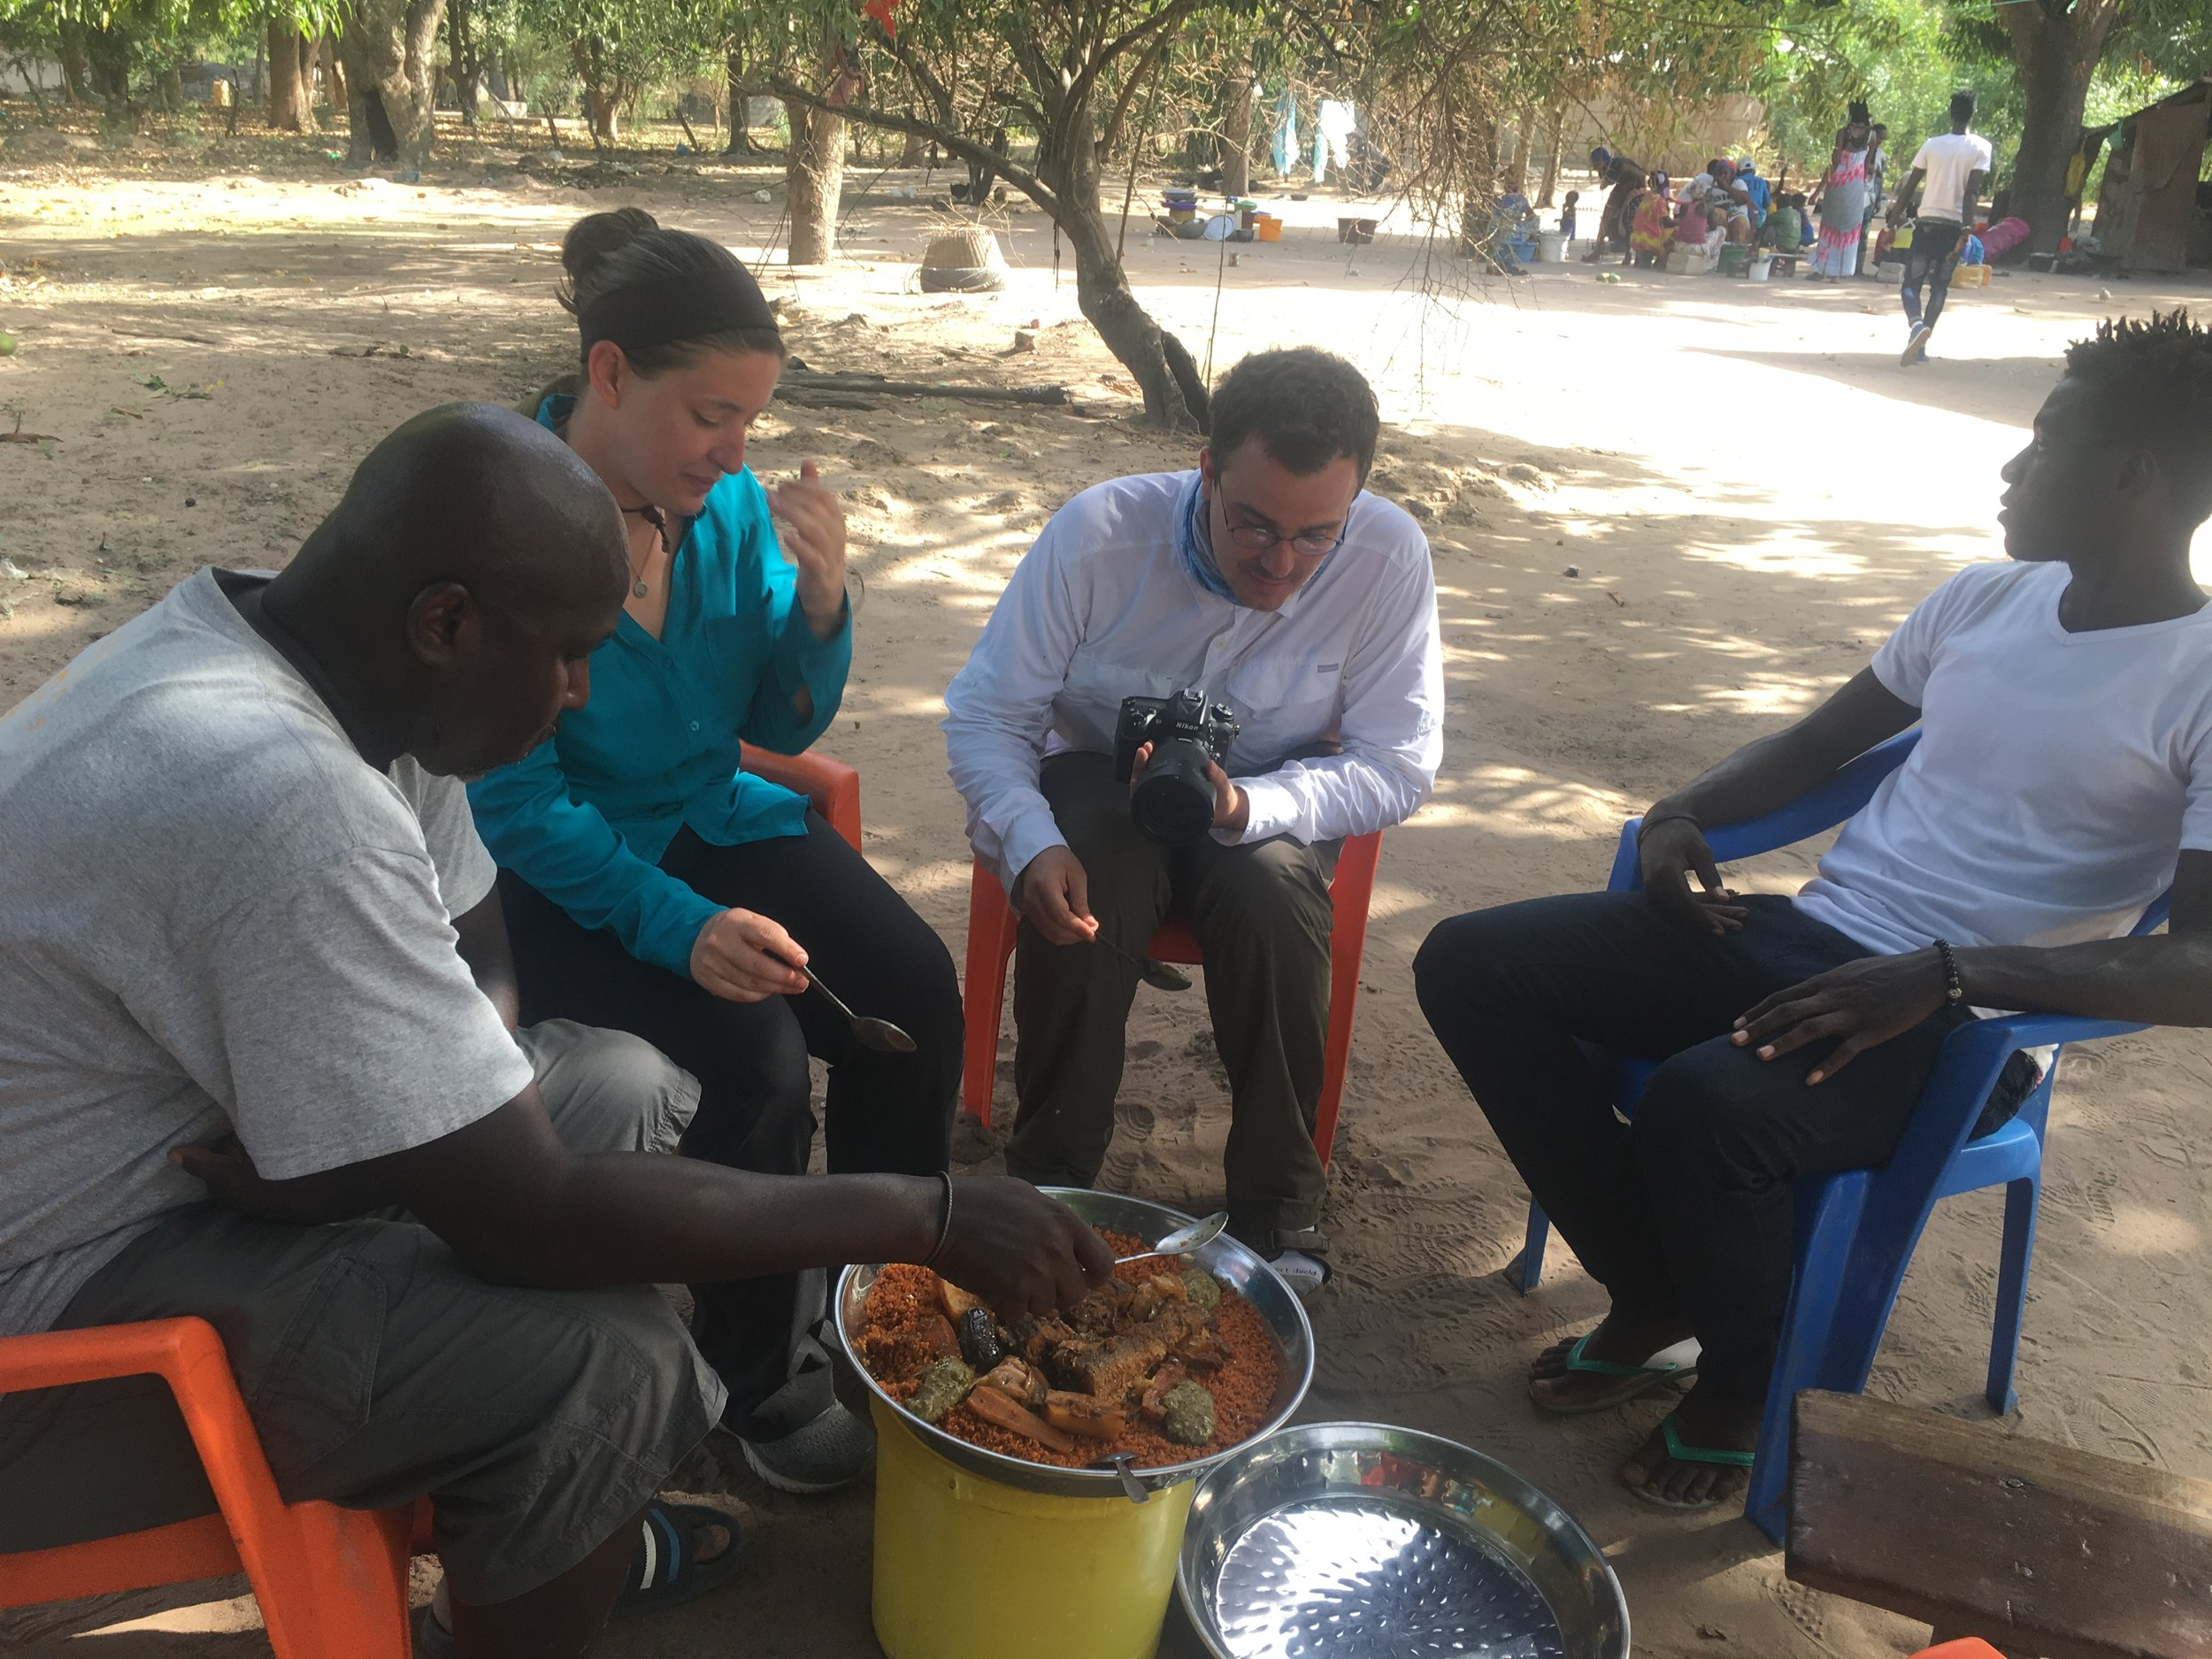 Communal eating is the norm in Senegal.